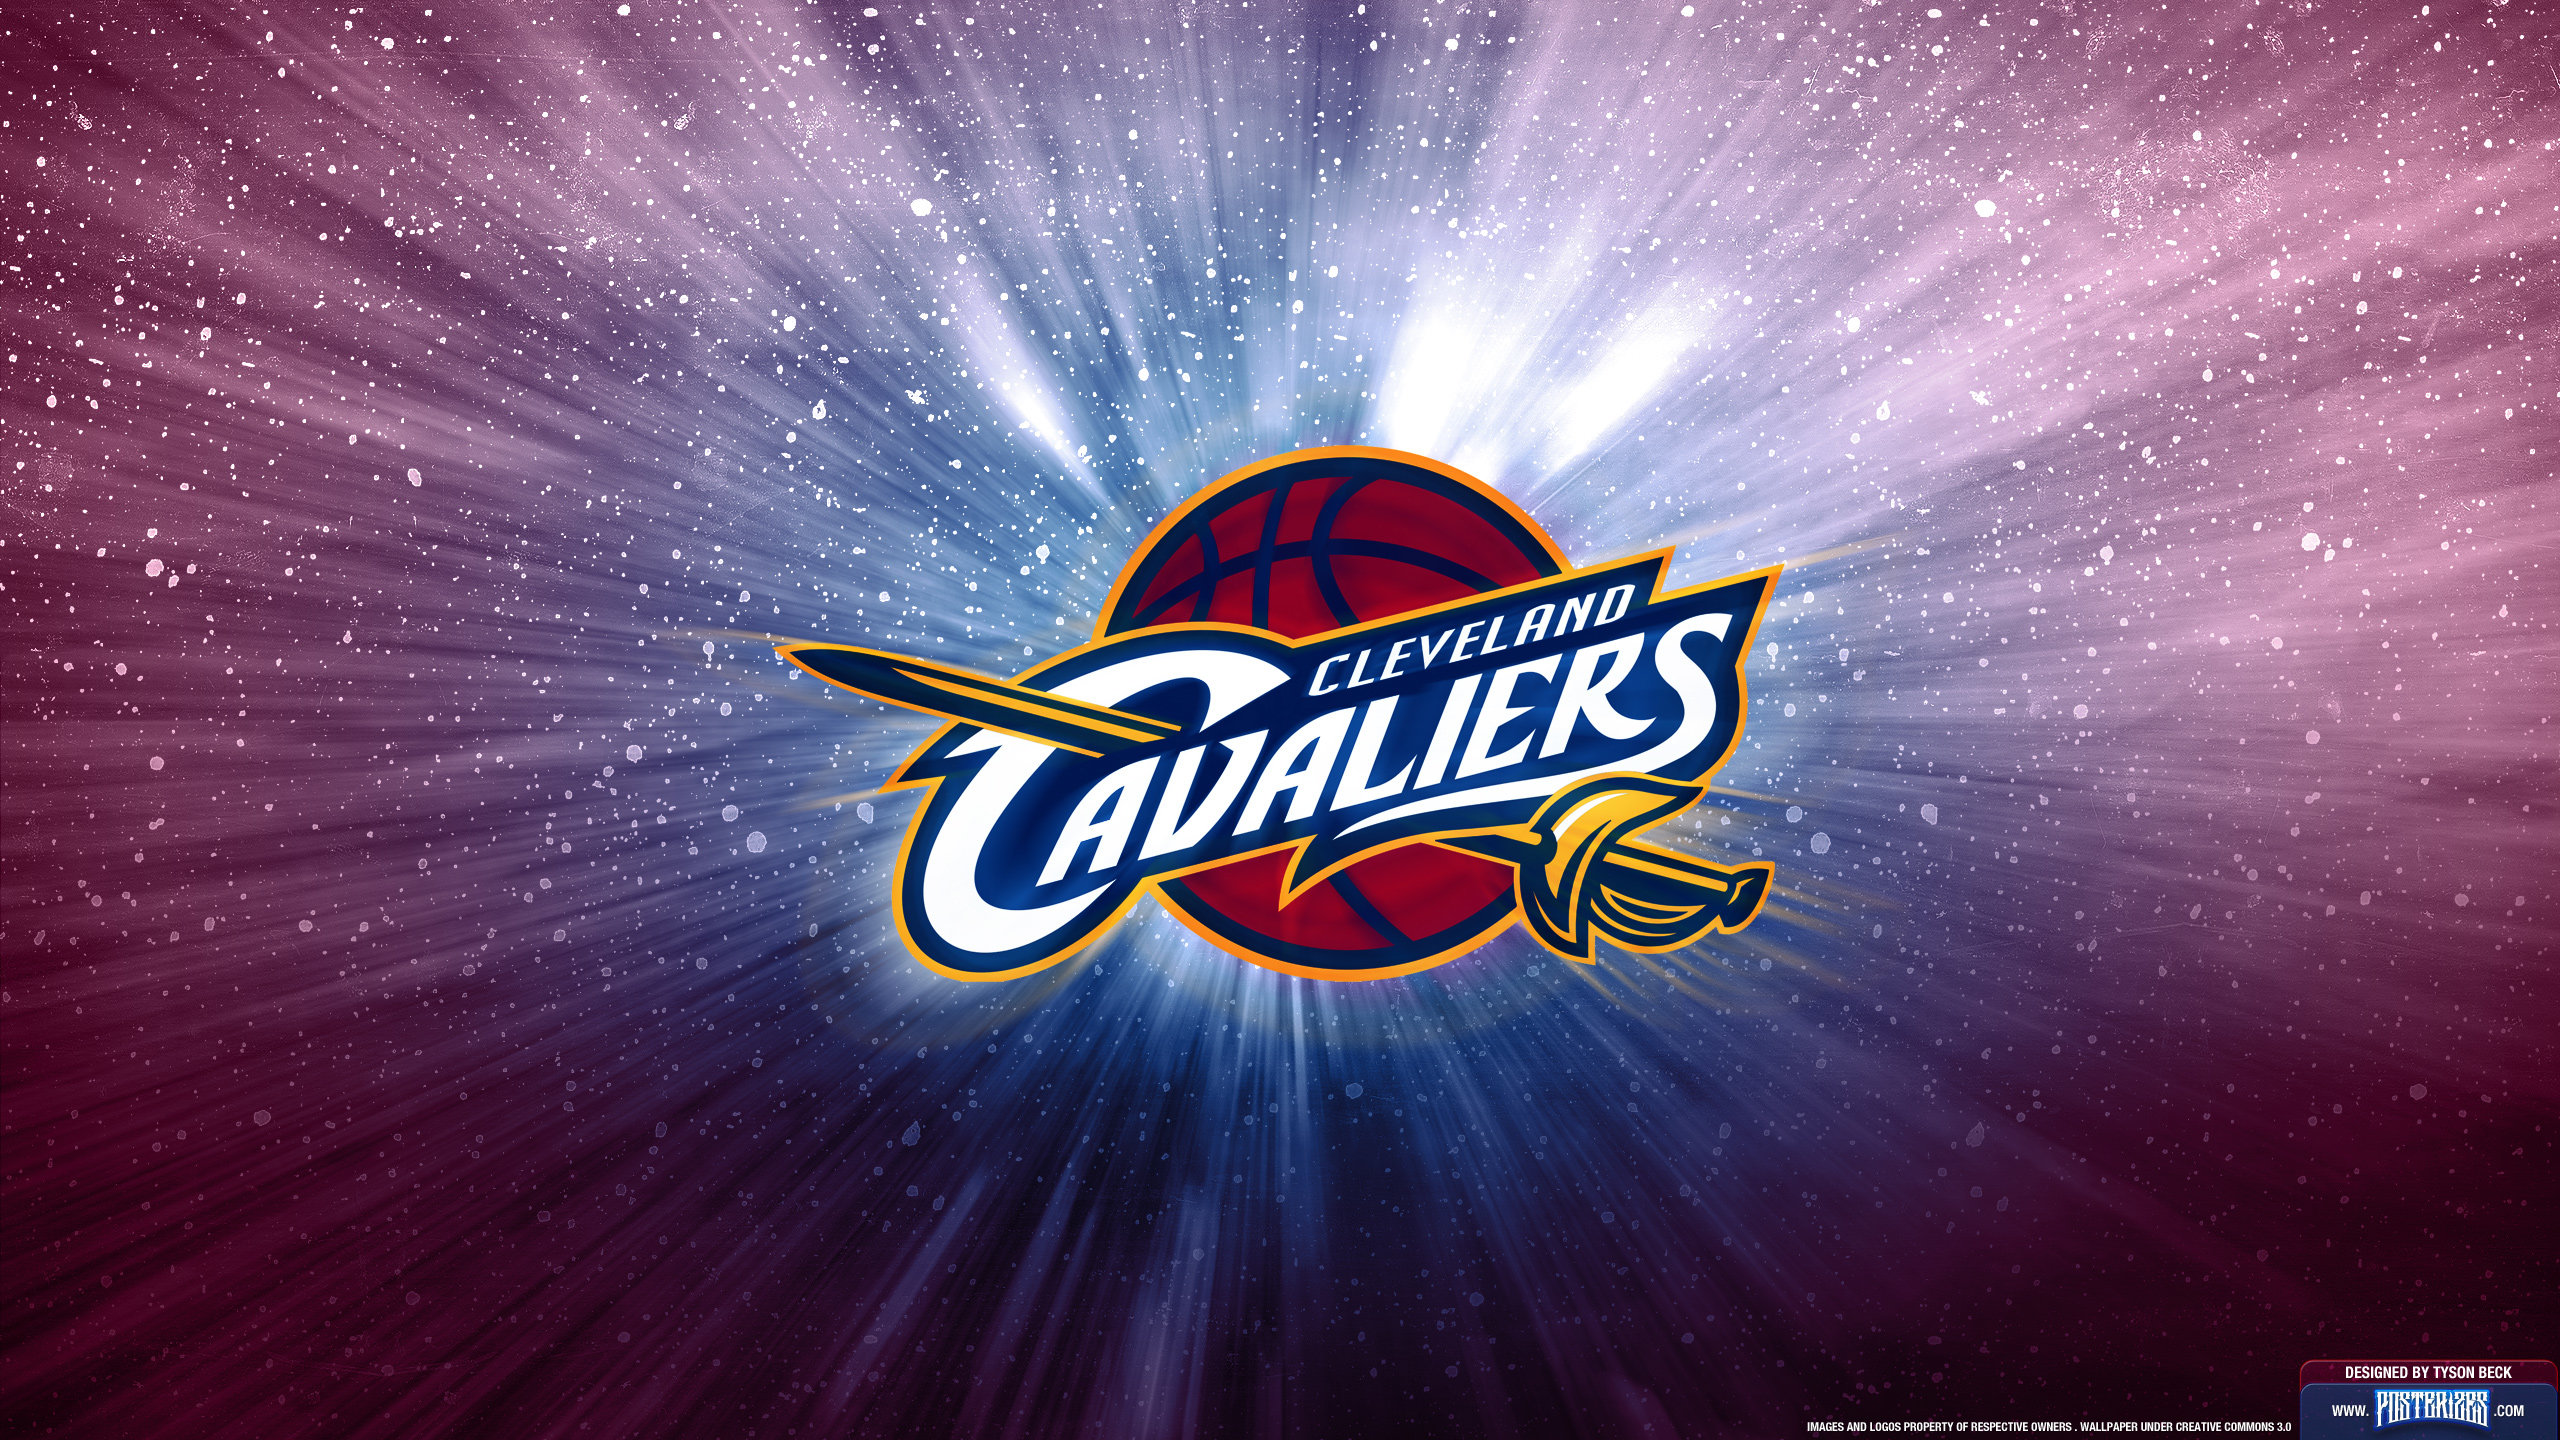 Download hd 2560x1440 Cleveland Cavaliers (CAVS) PC wallpaper ID:350452 for free